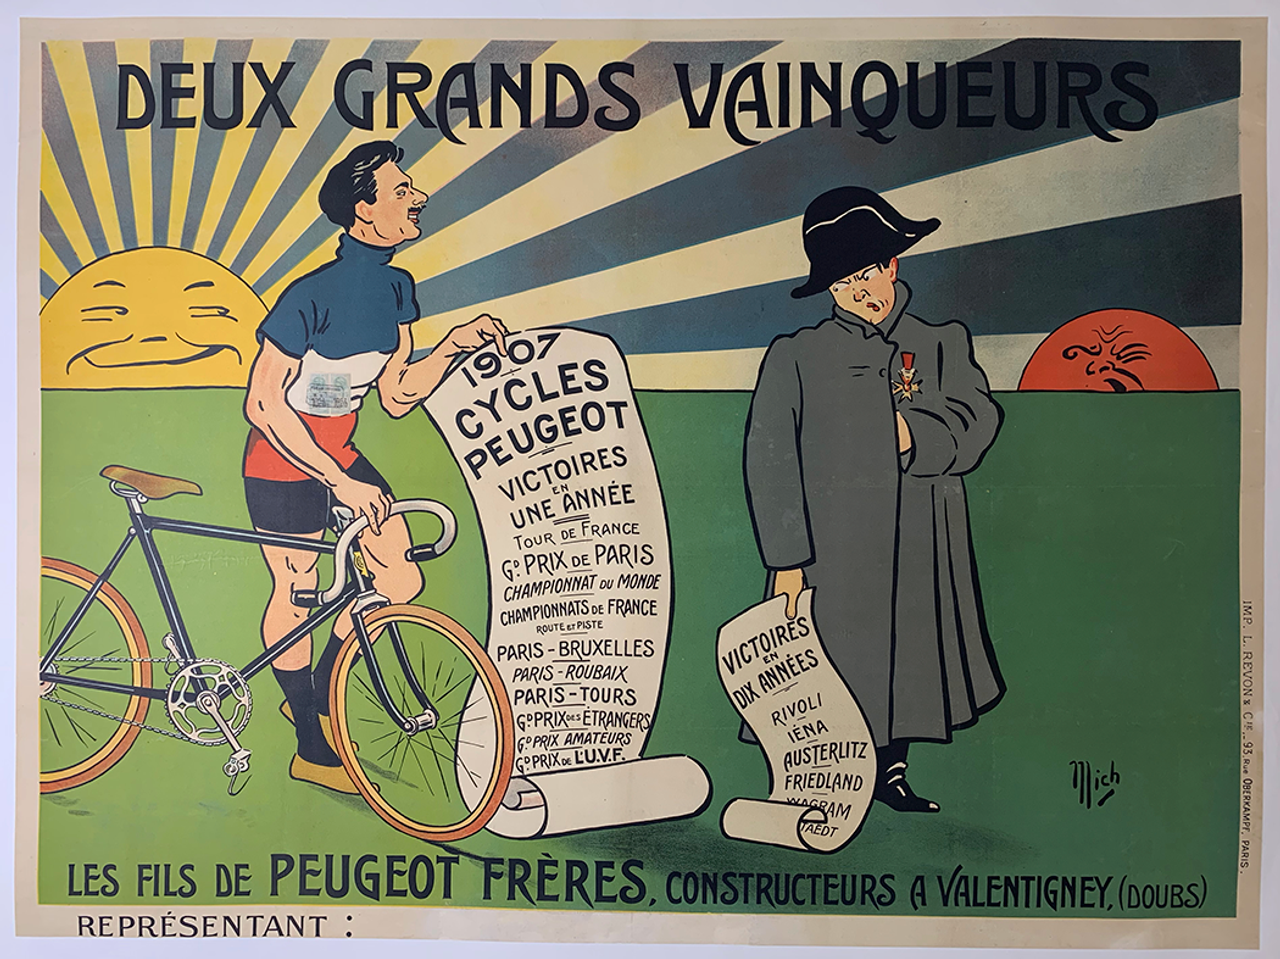 Peugeot Grand  Vainqueurs Original Vintage  Bicycle Poster by Mich